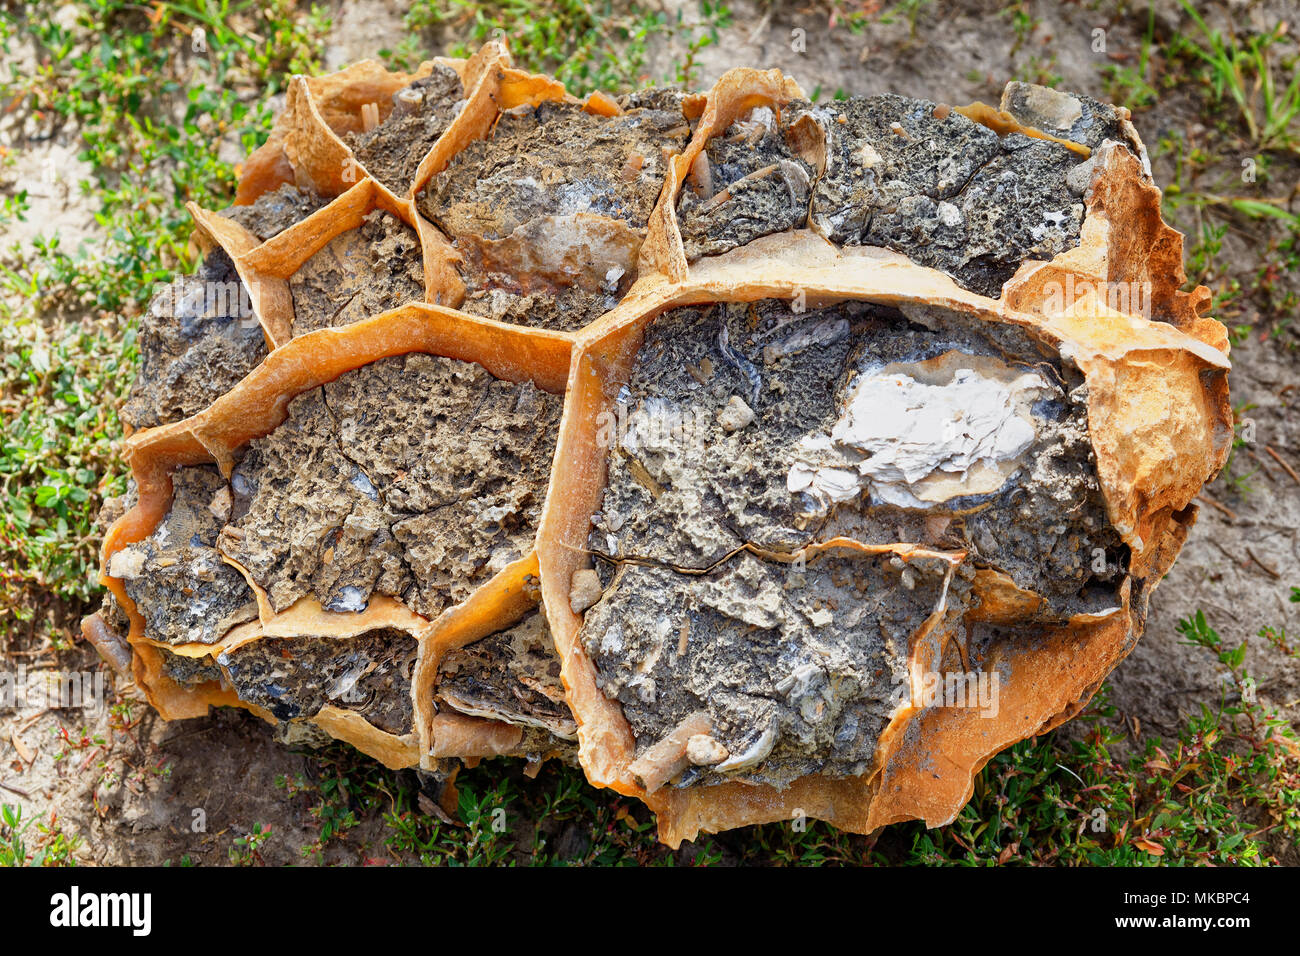 Calcite concretions in clay-septaria,Southern Ural. The oldest remains of the seabed interspersed with remnants of molluscs and minerals - Stock Image